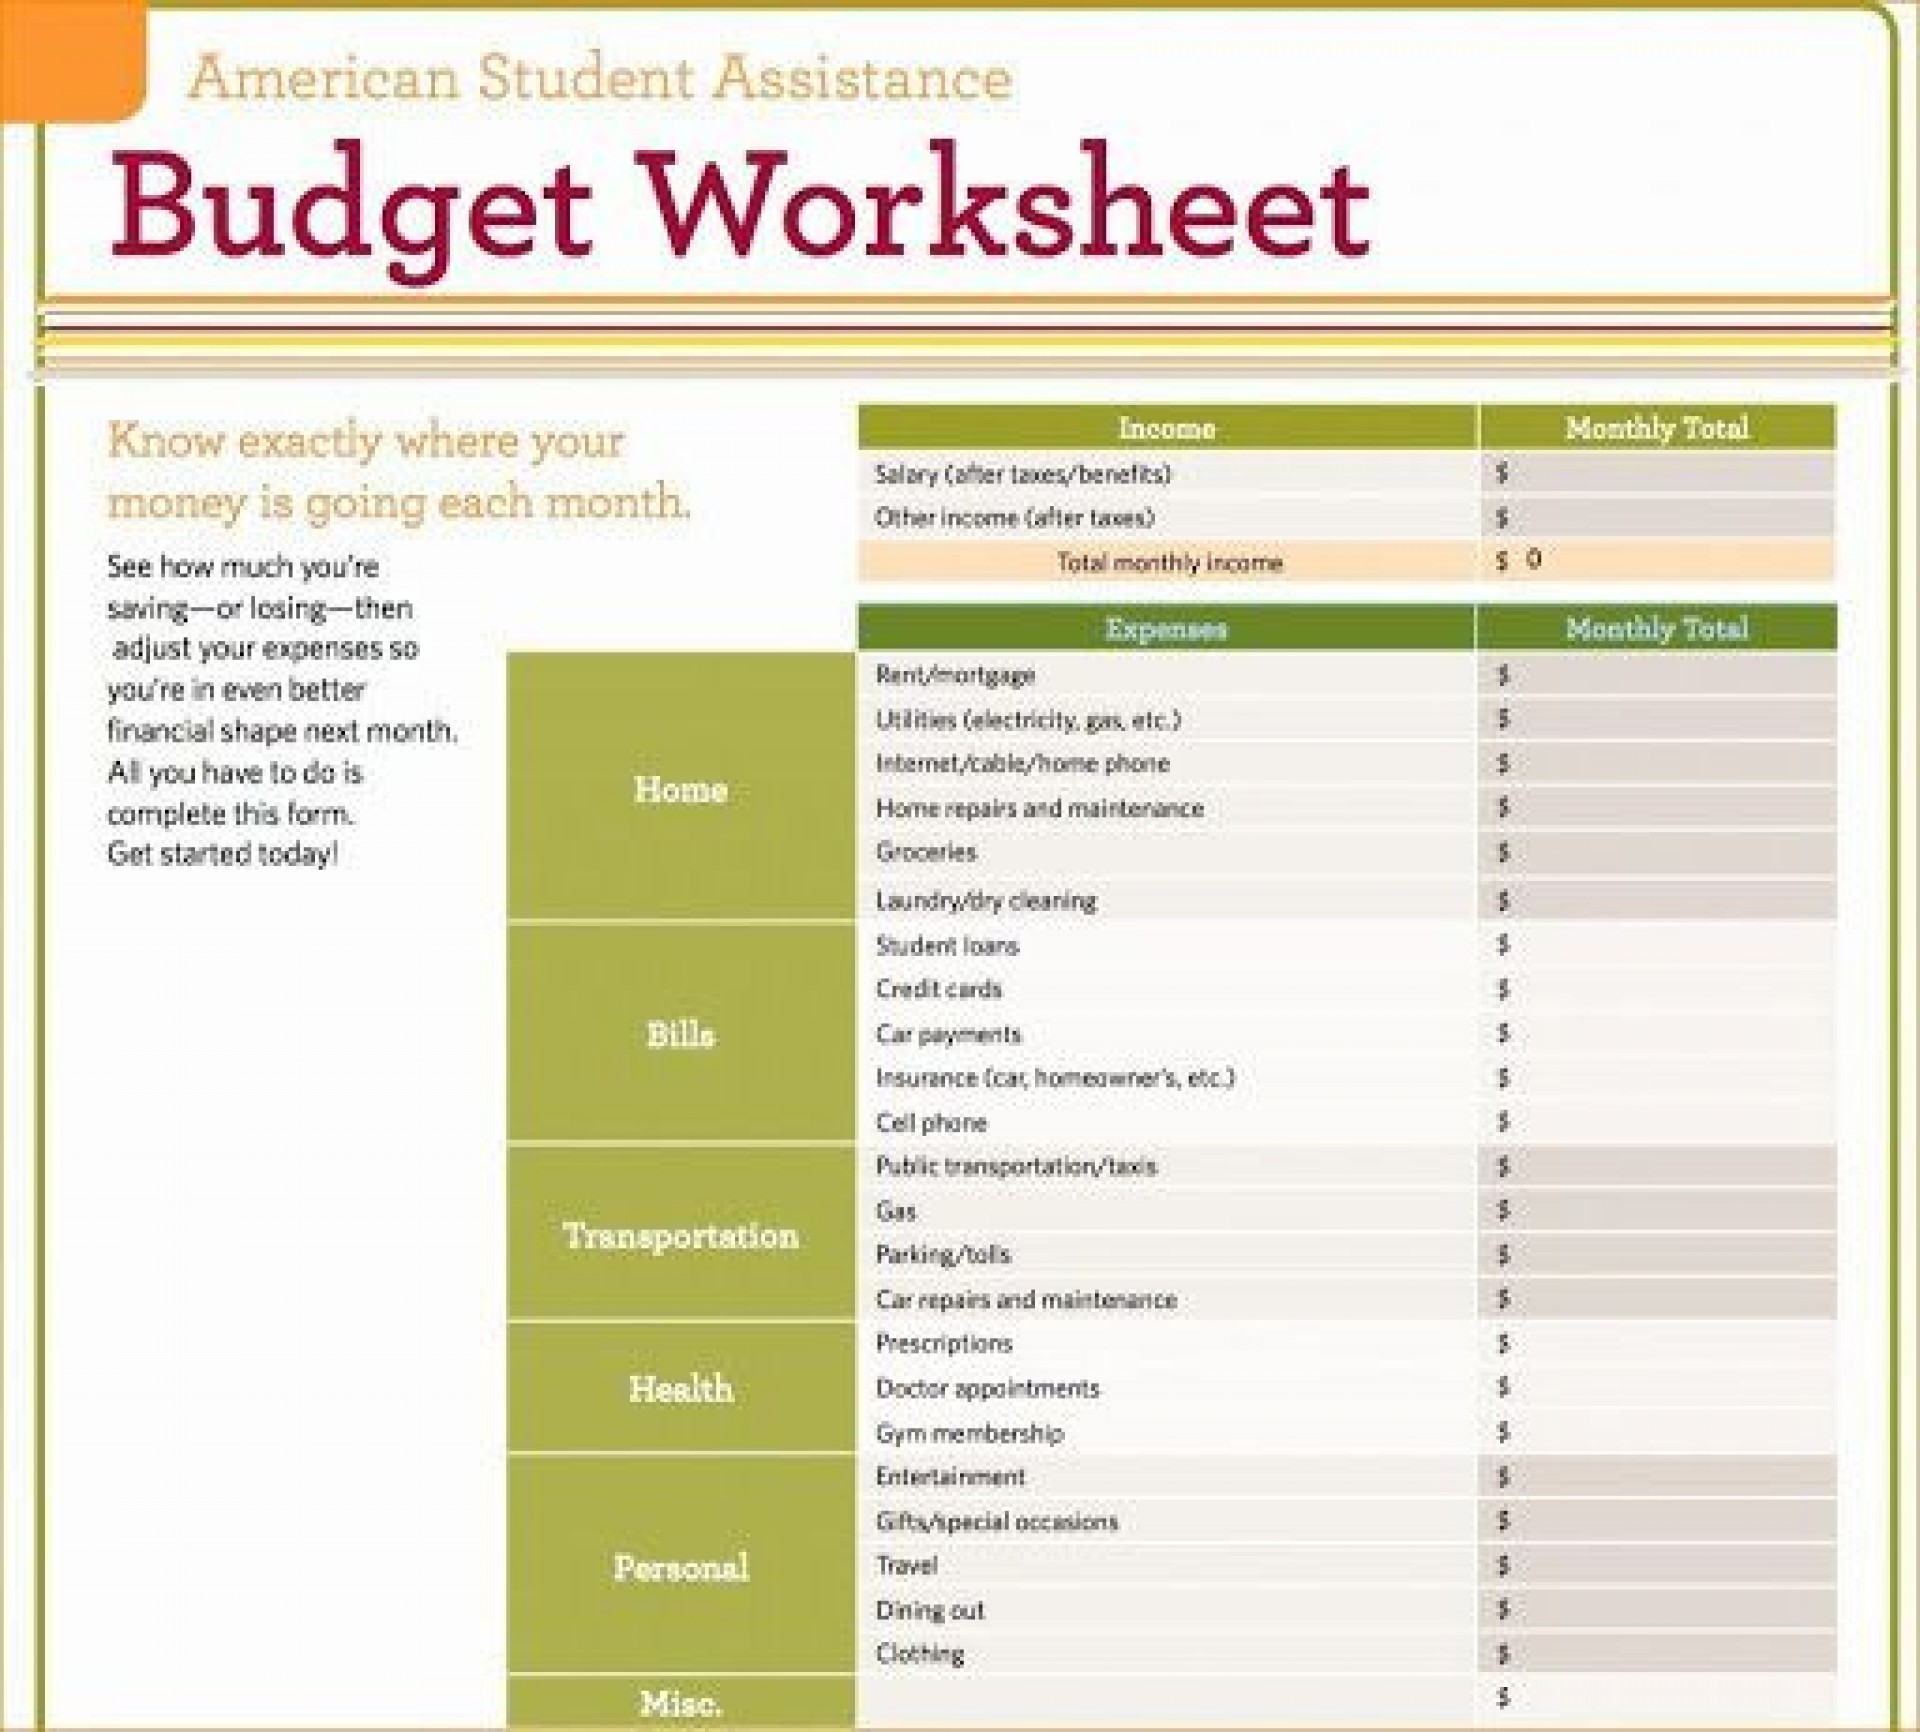 009 Exceptional Personal Budget Spreadsheet Template For Mac Image 1920